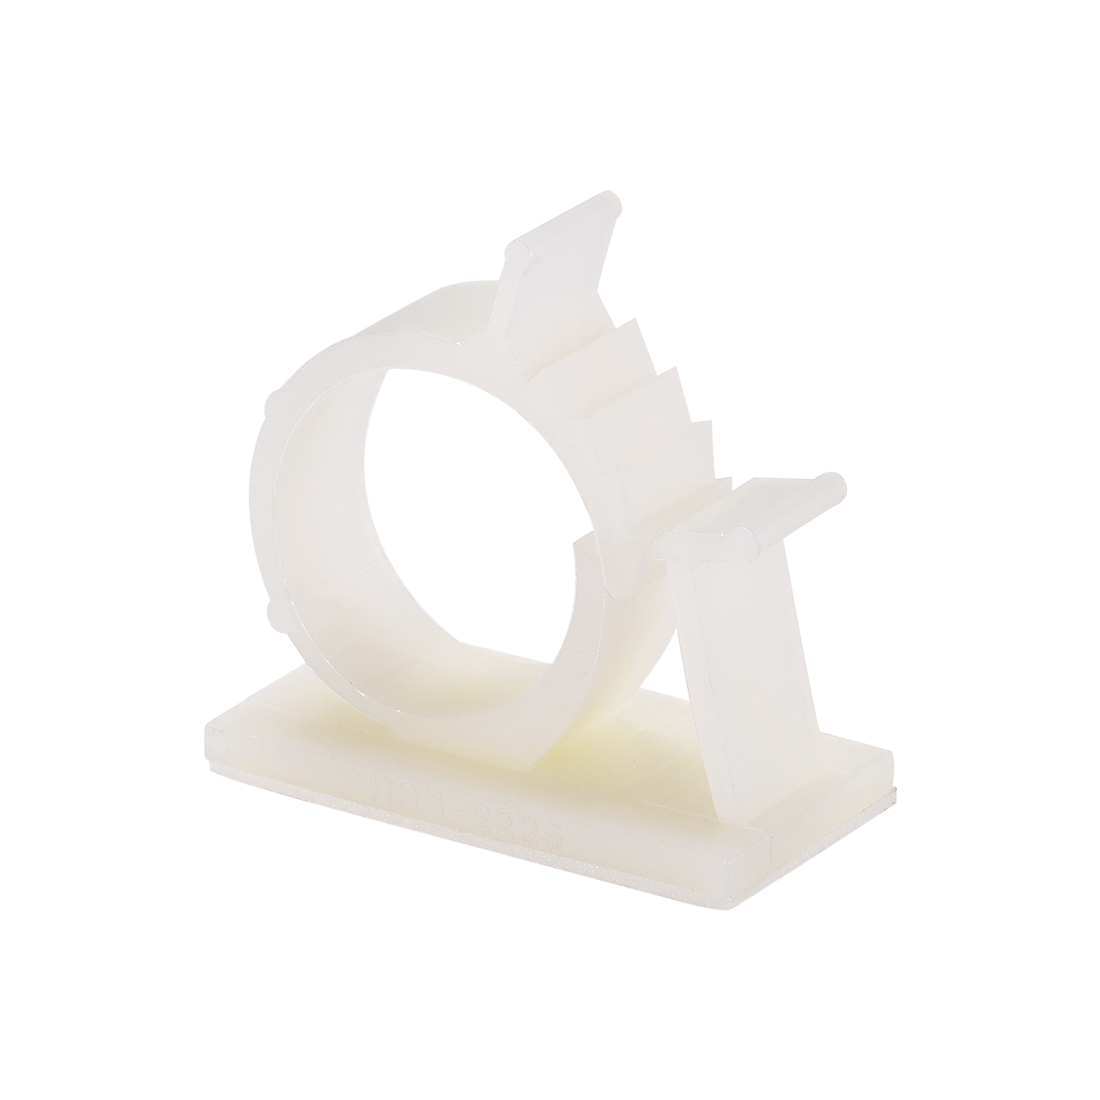 Adjustable White Cable Clips Buckle Adhesive Base for 20mm-24mm Cords 20Pcs